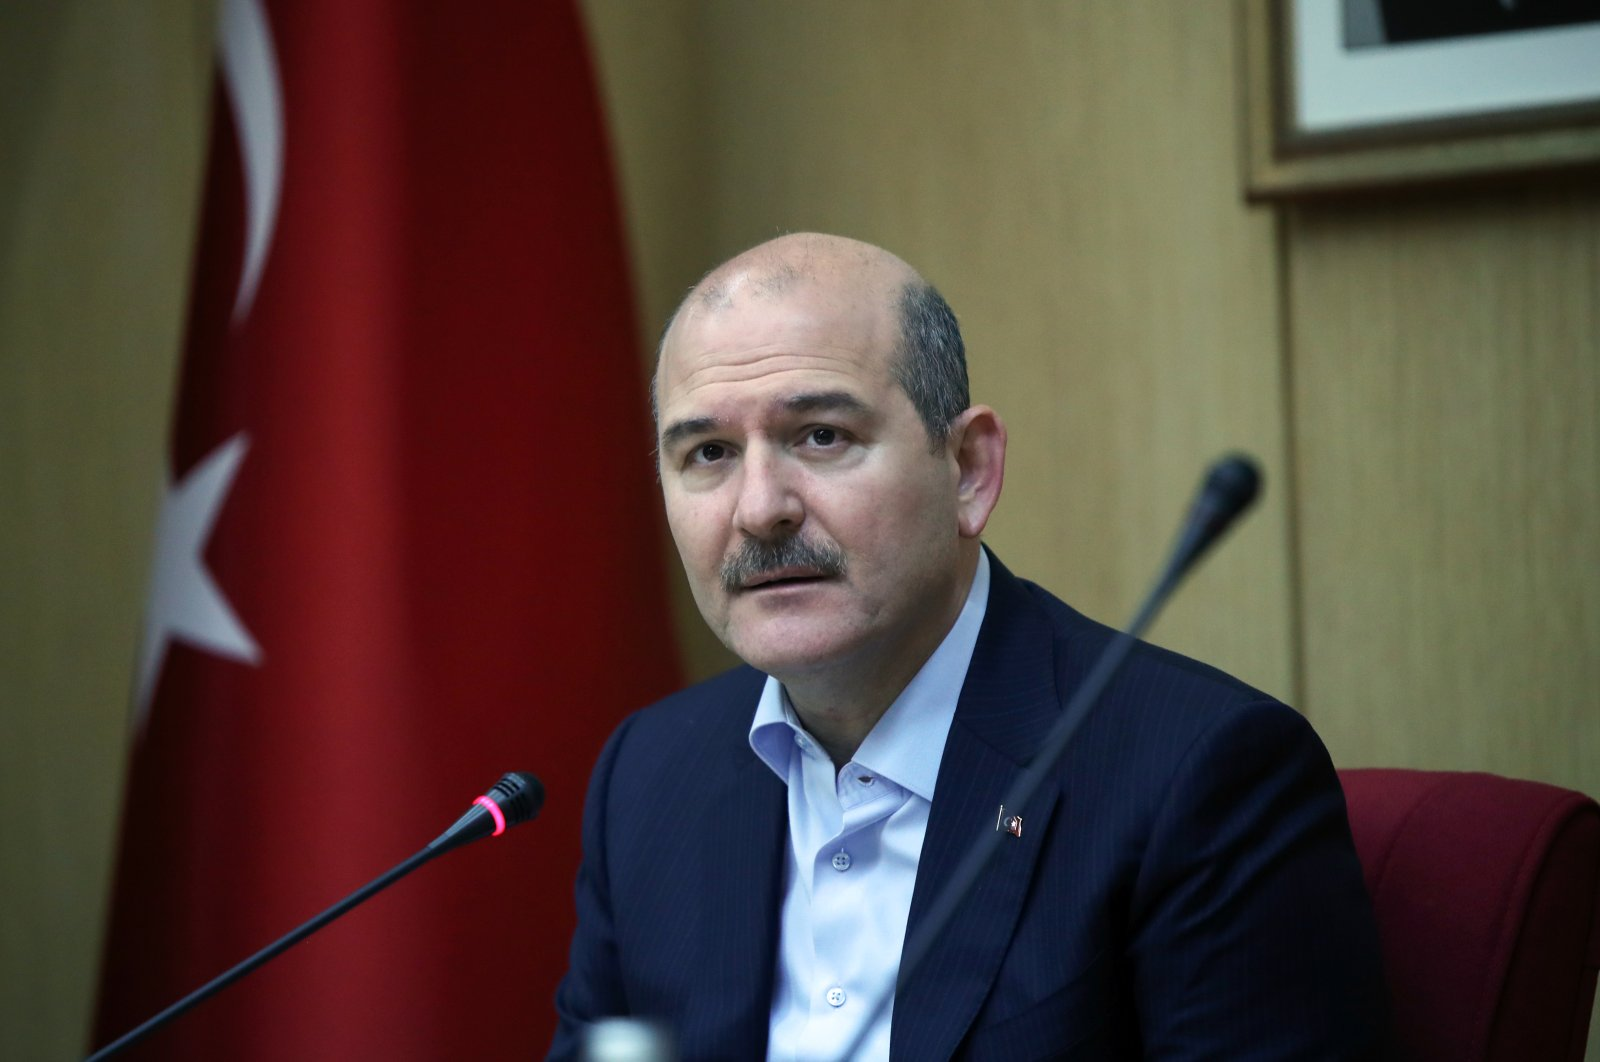 Interior Minister Süleyman Soylu speaks at a news conference in Ankara, Turkey, April 12, 2020. (AA Photo)